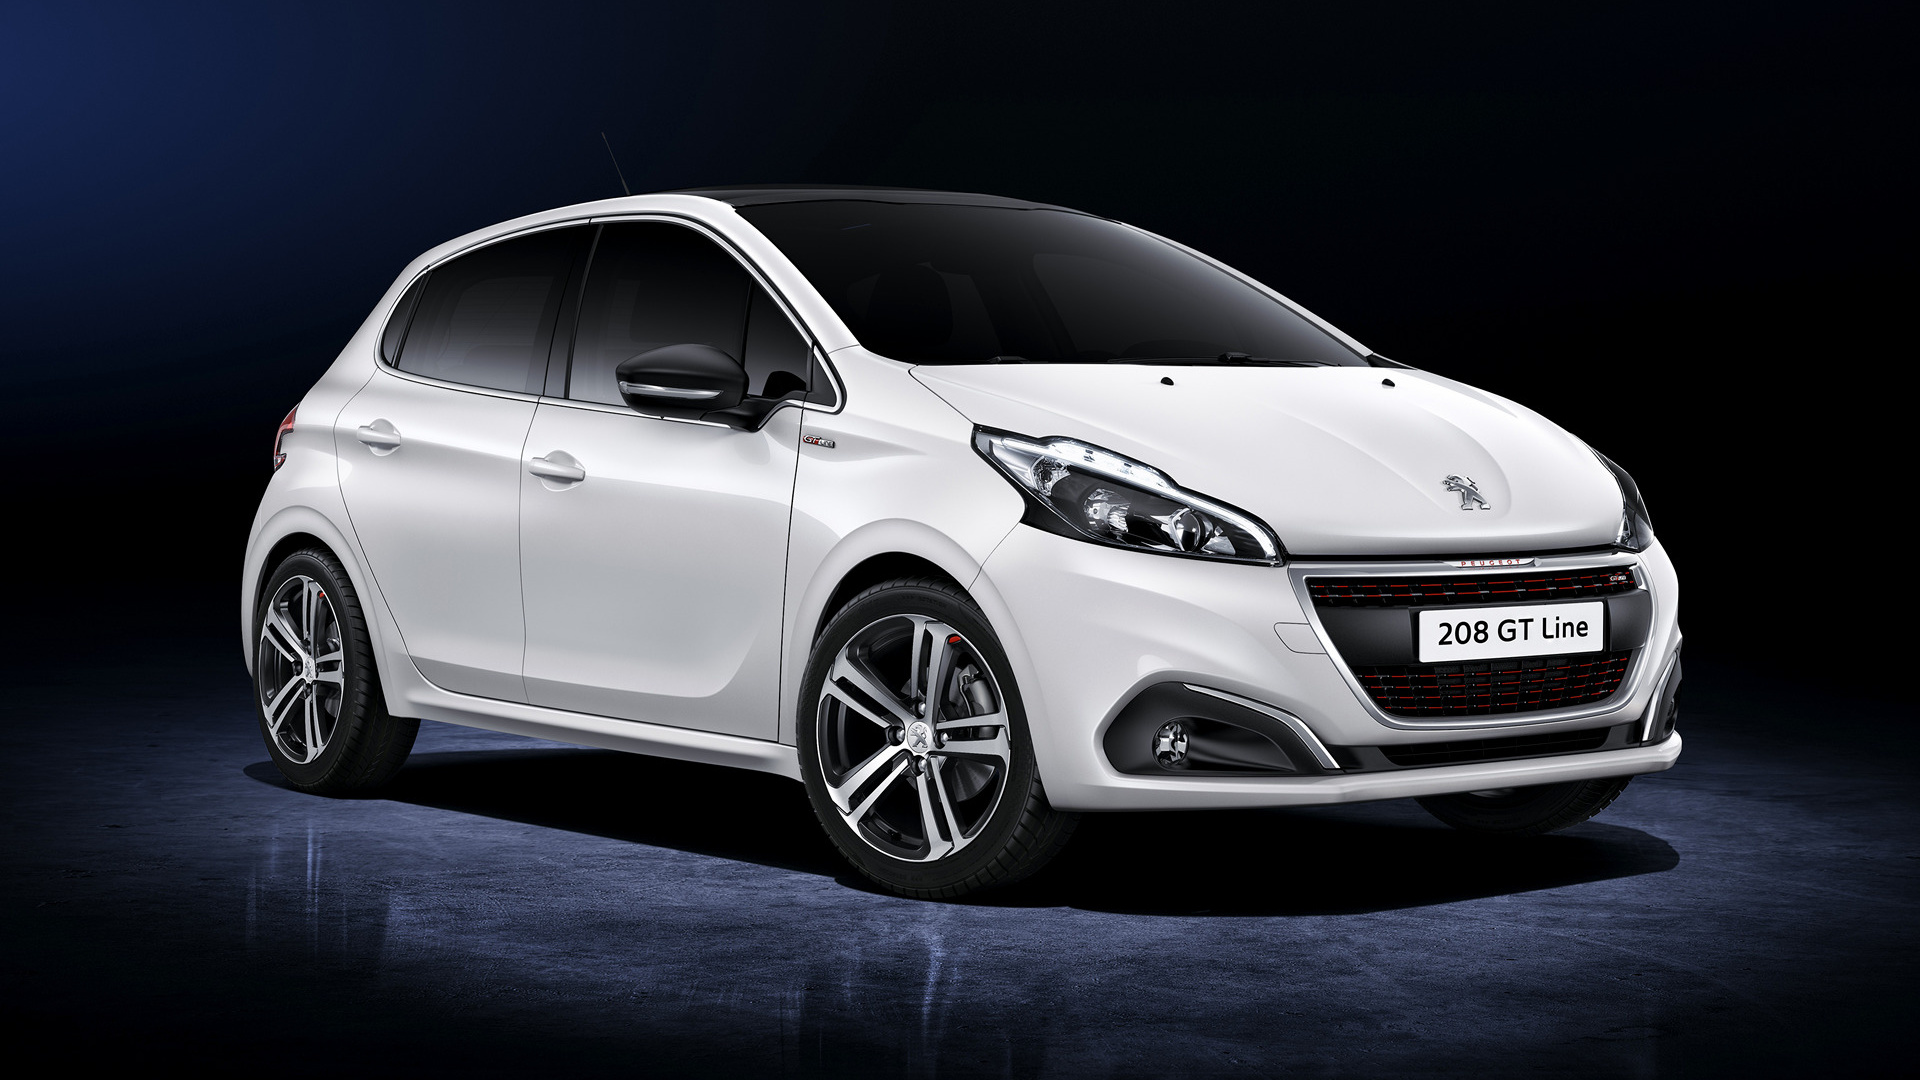 2015 peugeot 208 gt line 5 door wallpapers and hd images car pixel. Black Bedroom Furniture Sets. Home Design Ideas